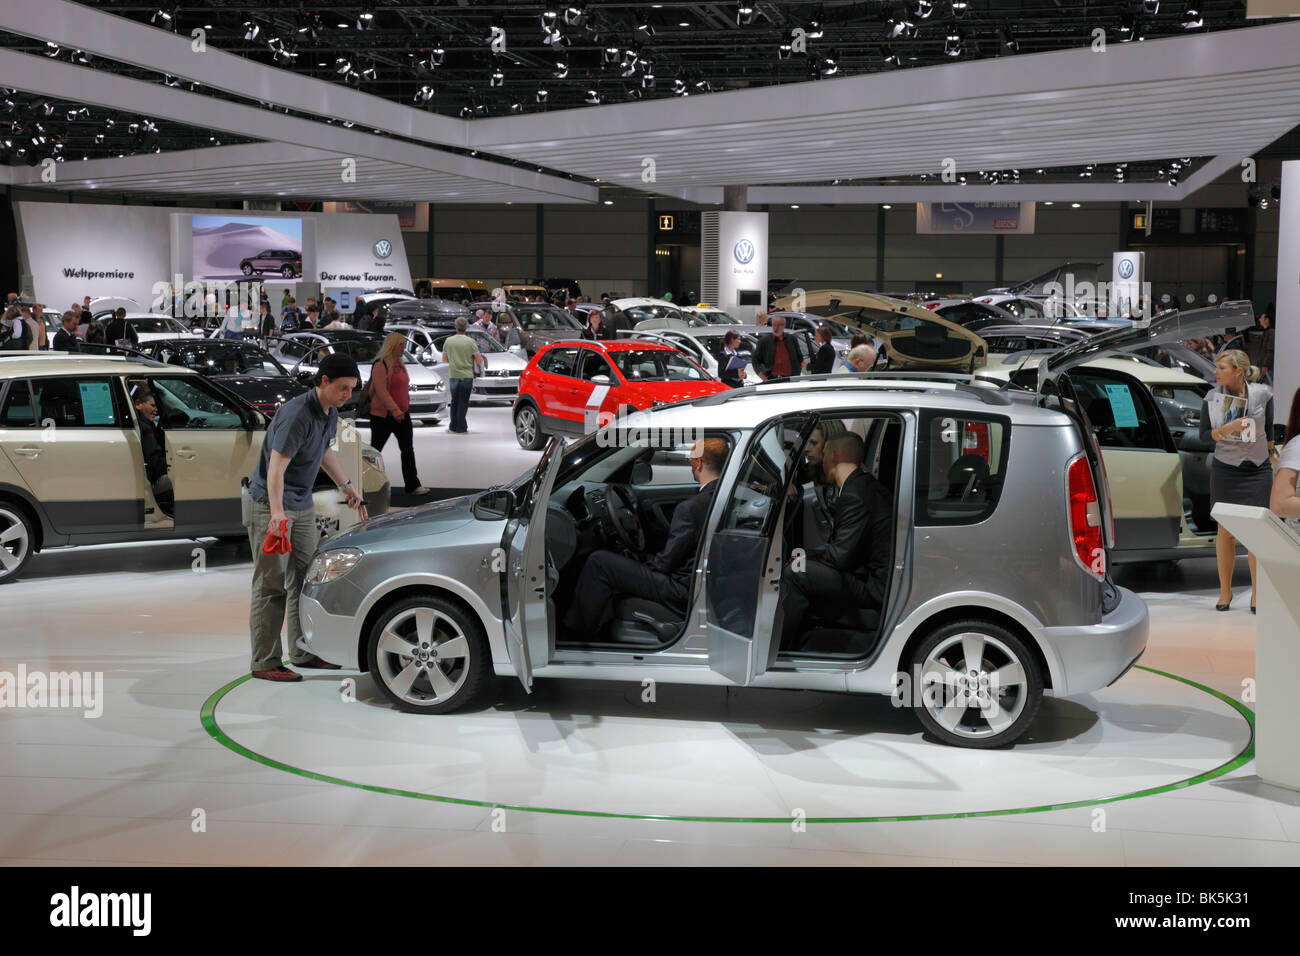 Skoda Roomster at the Auto Mobil International (AMI) - the Motor Show 2010 in Leipzig, Germany - Stock Image